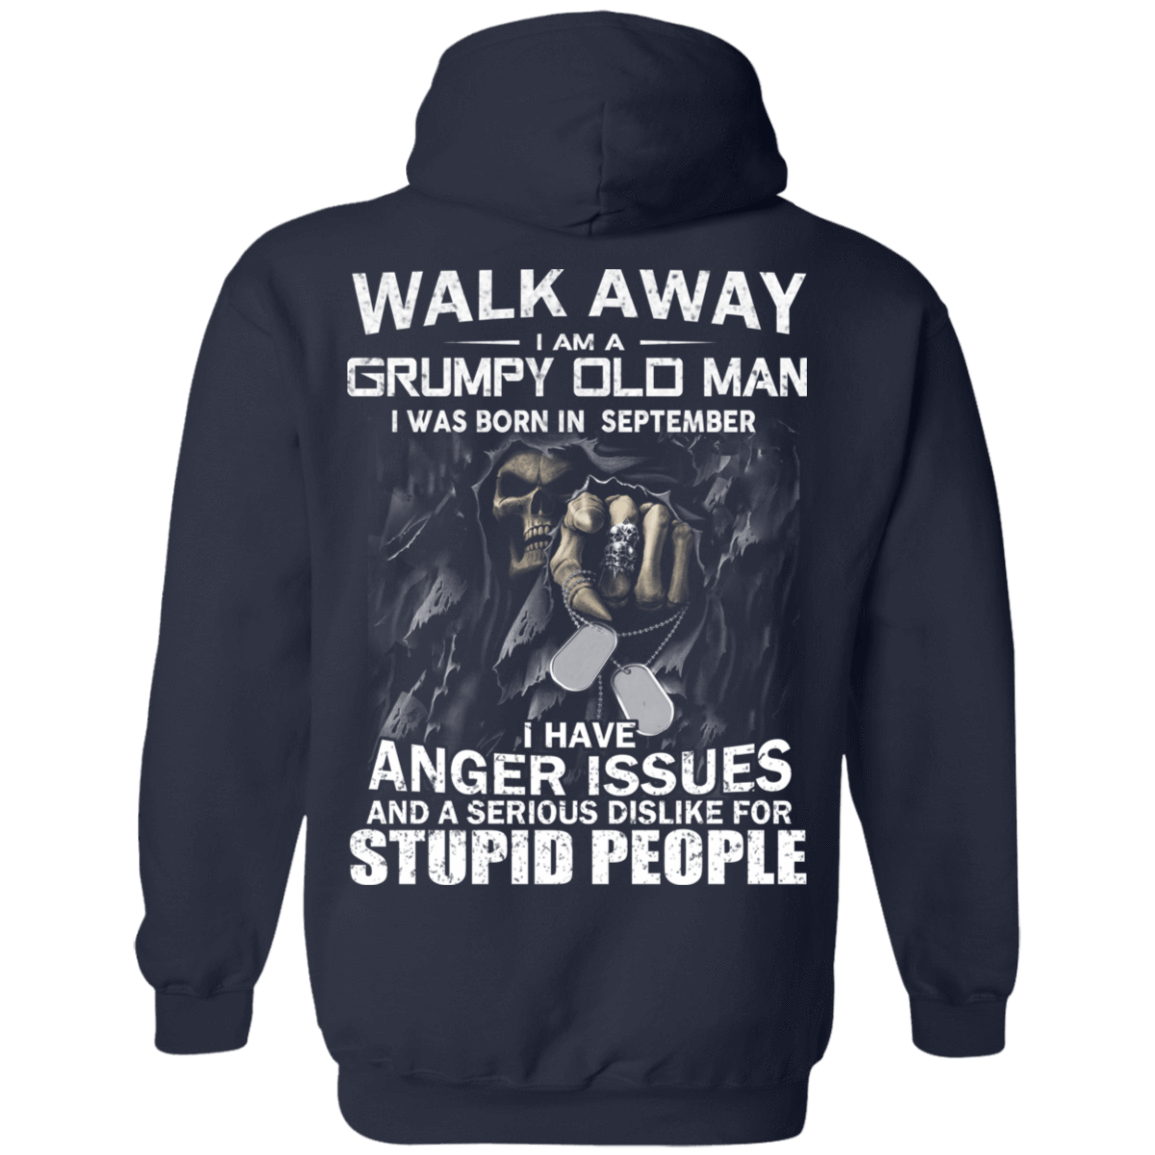 I Am A Grumpy Old Man I Was Born In September T-Shirts, Hoodies, Tank 541-4742-80564223-23135 - Tee Ript